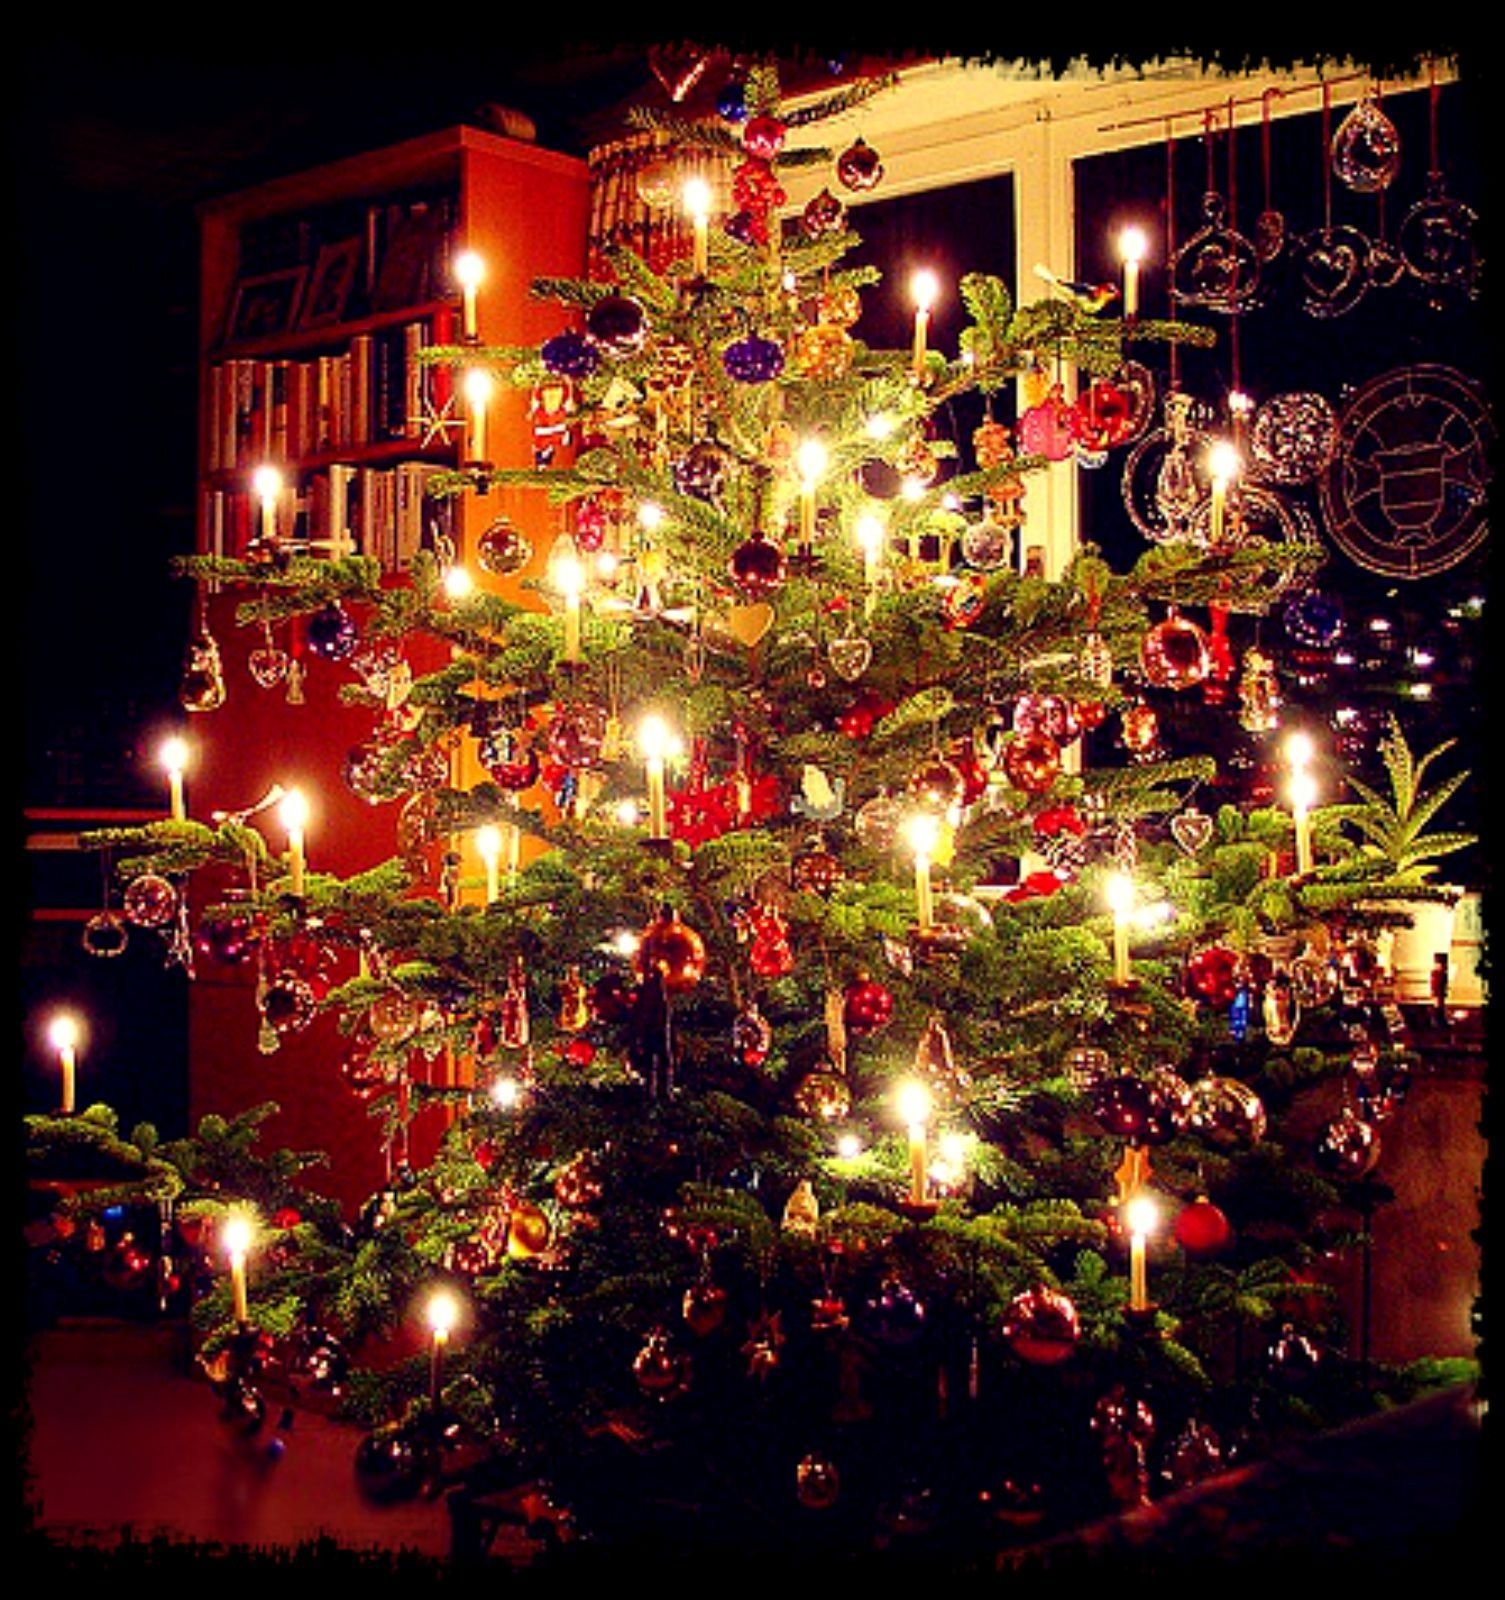 The First Known Christmas Tree (Der Tannenbaum) Was Set Up